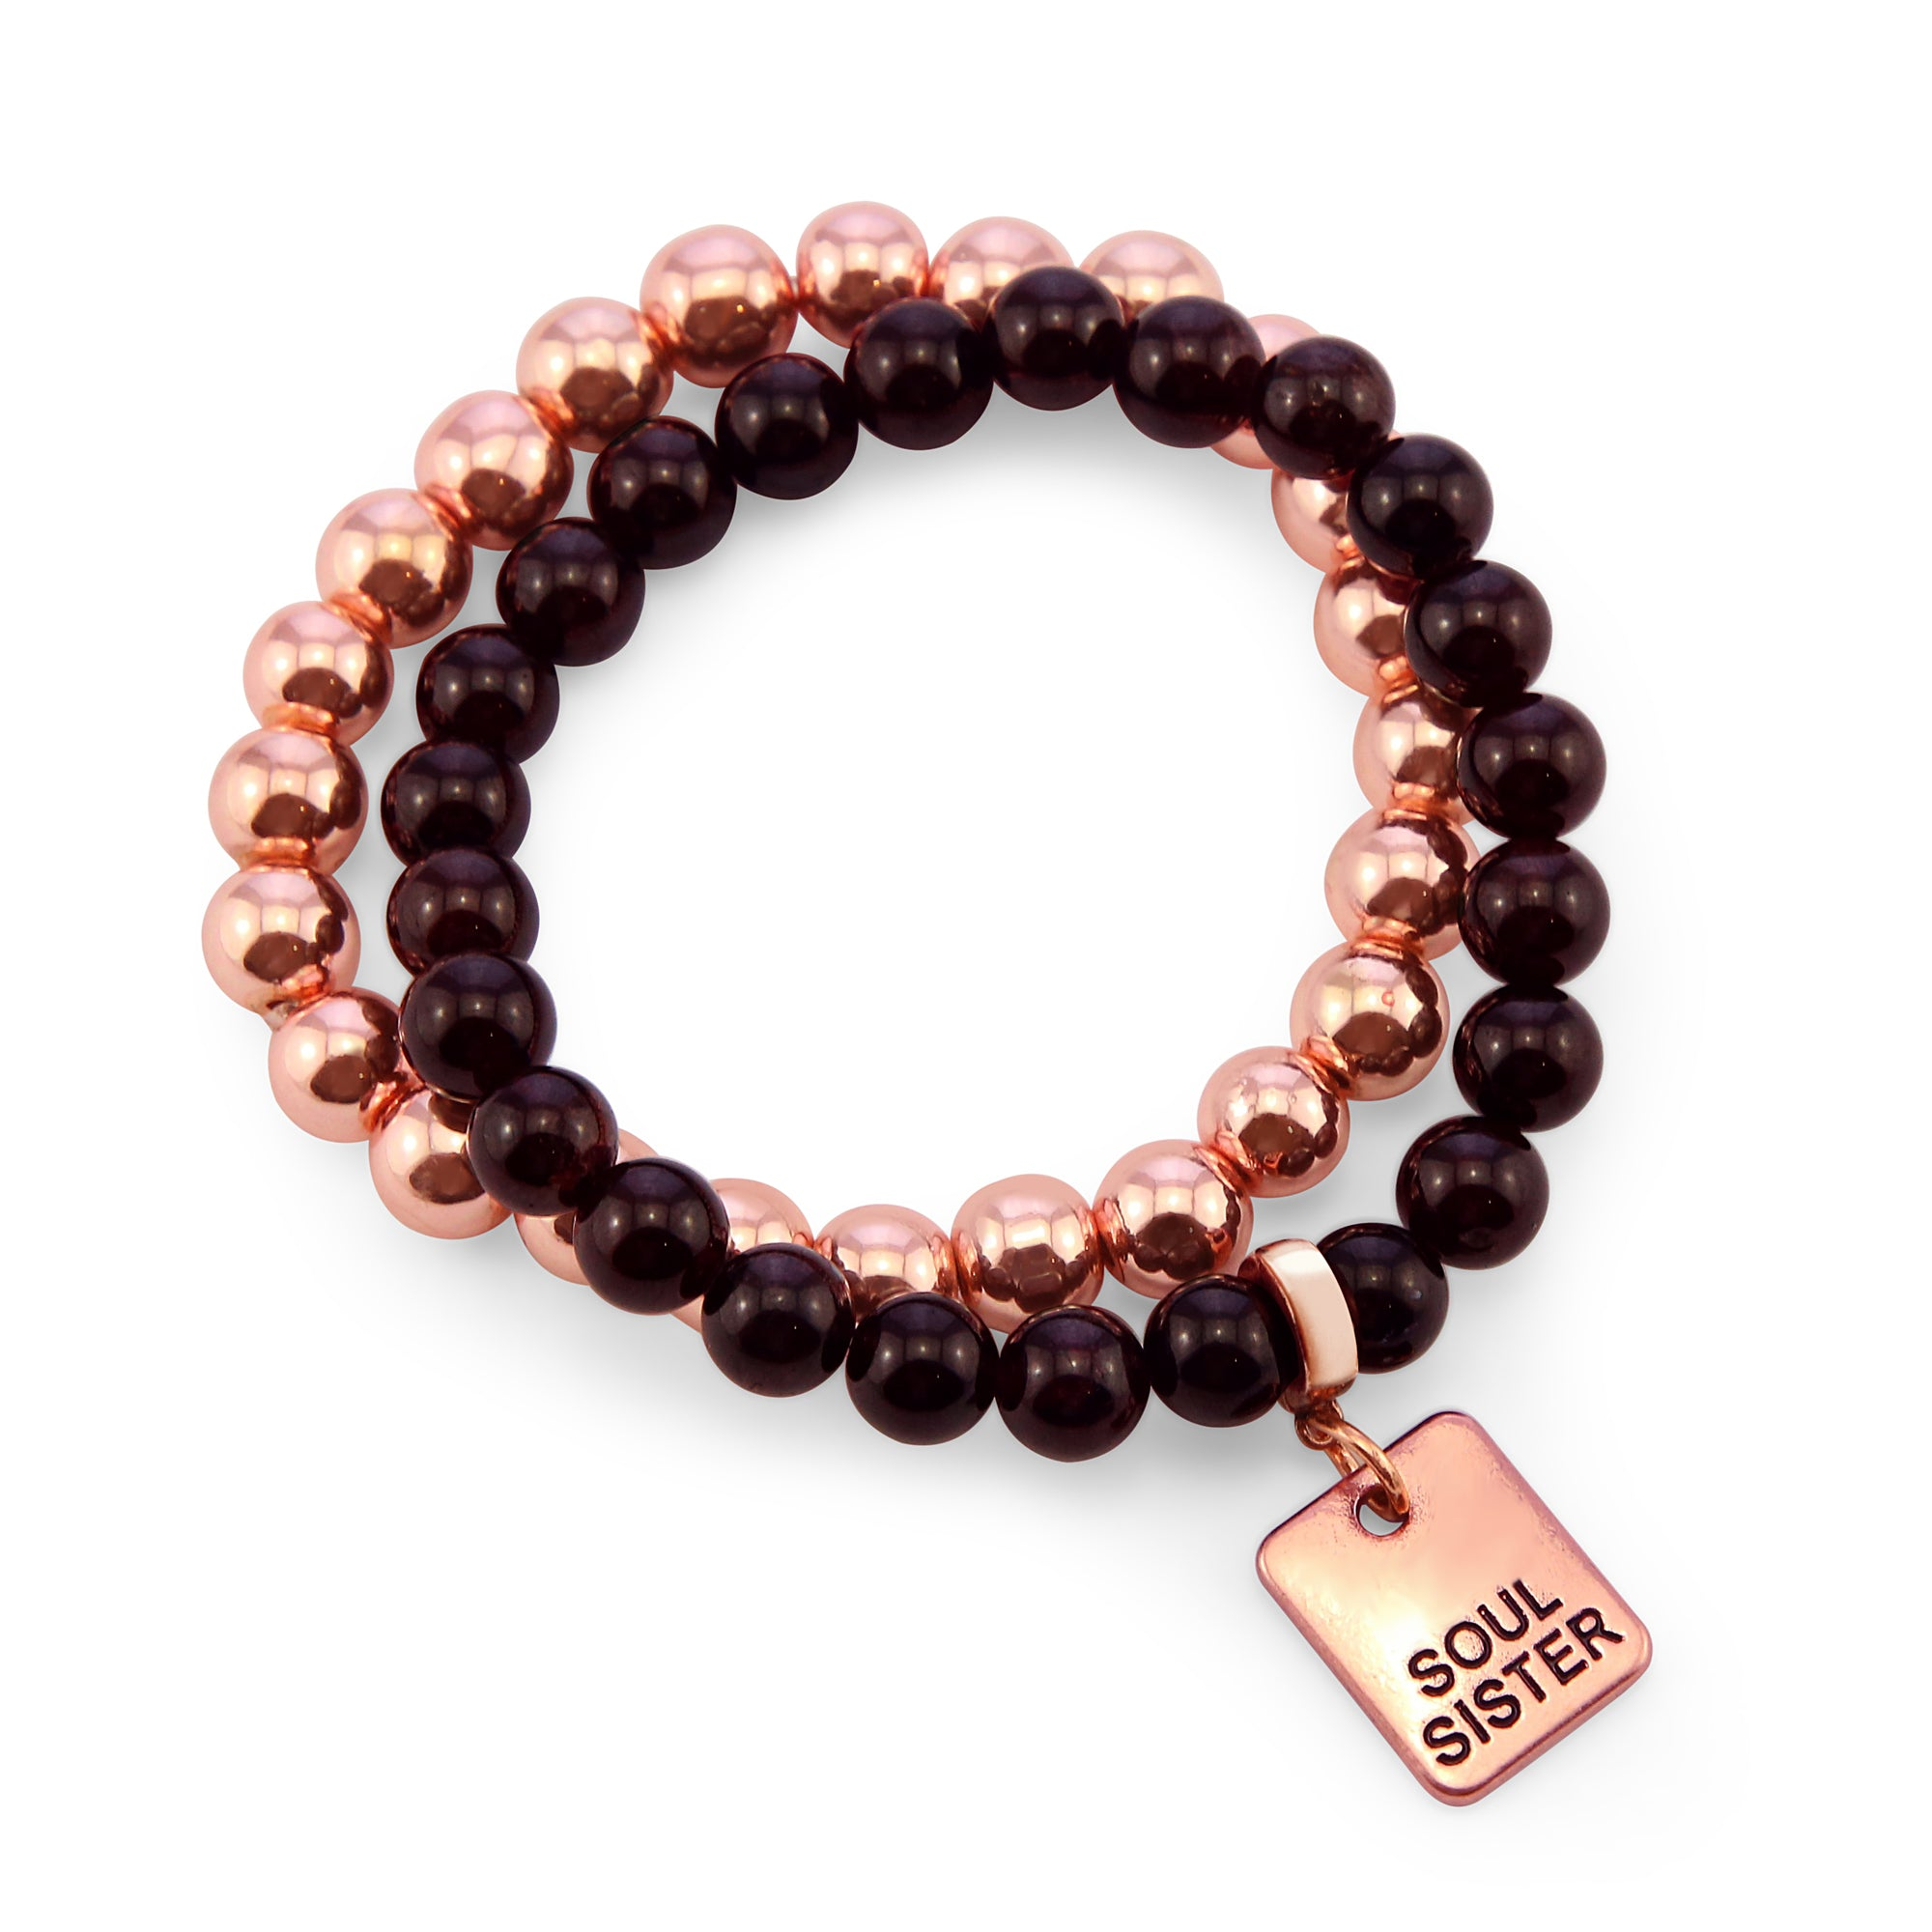 Bracelet Duo! Rose Gold & Garnet bead bracelet stacker set - SOUL SISTER (10824)